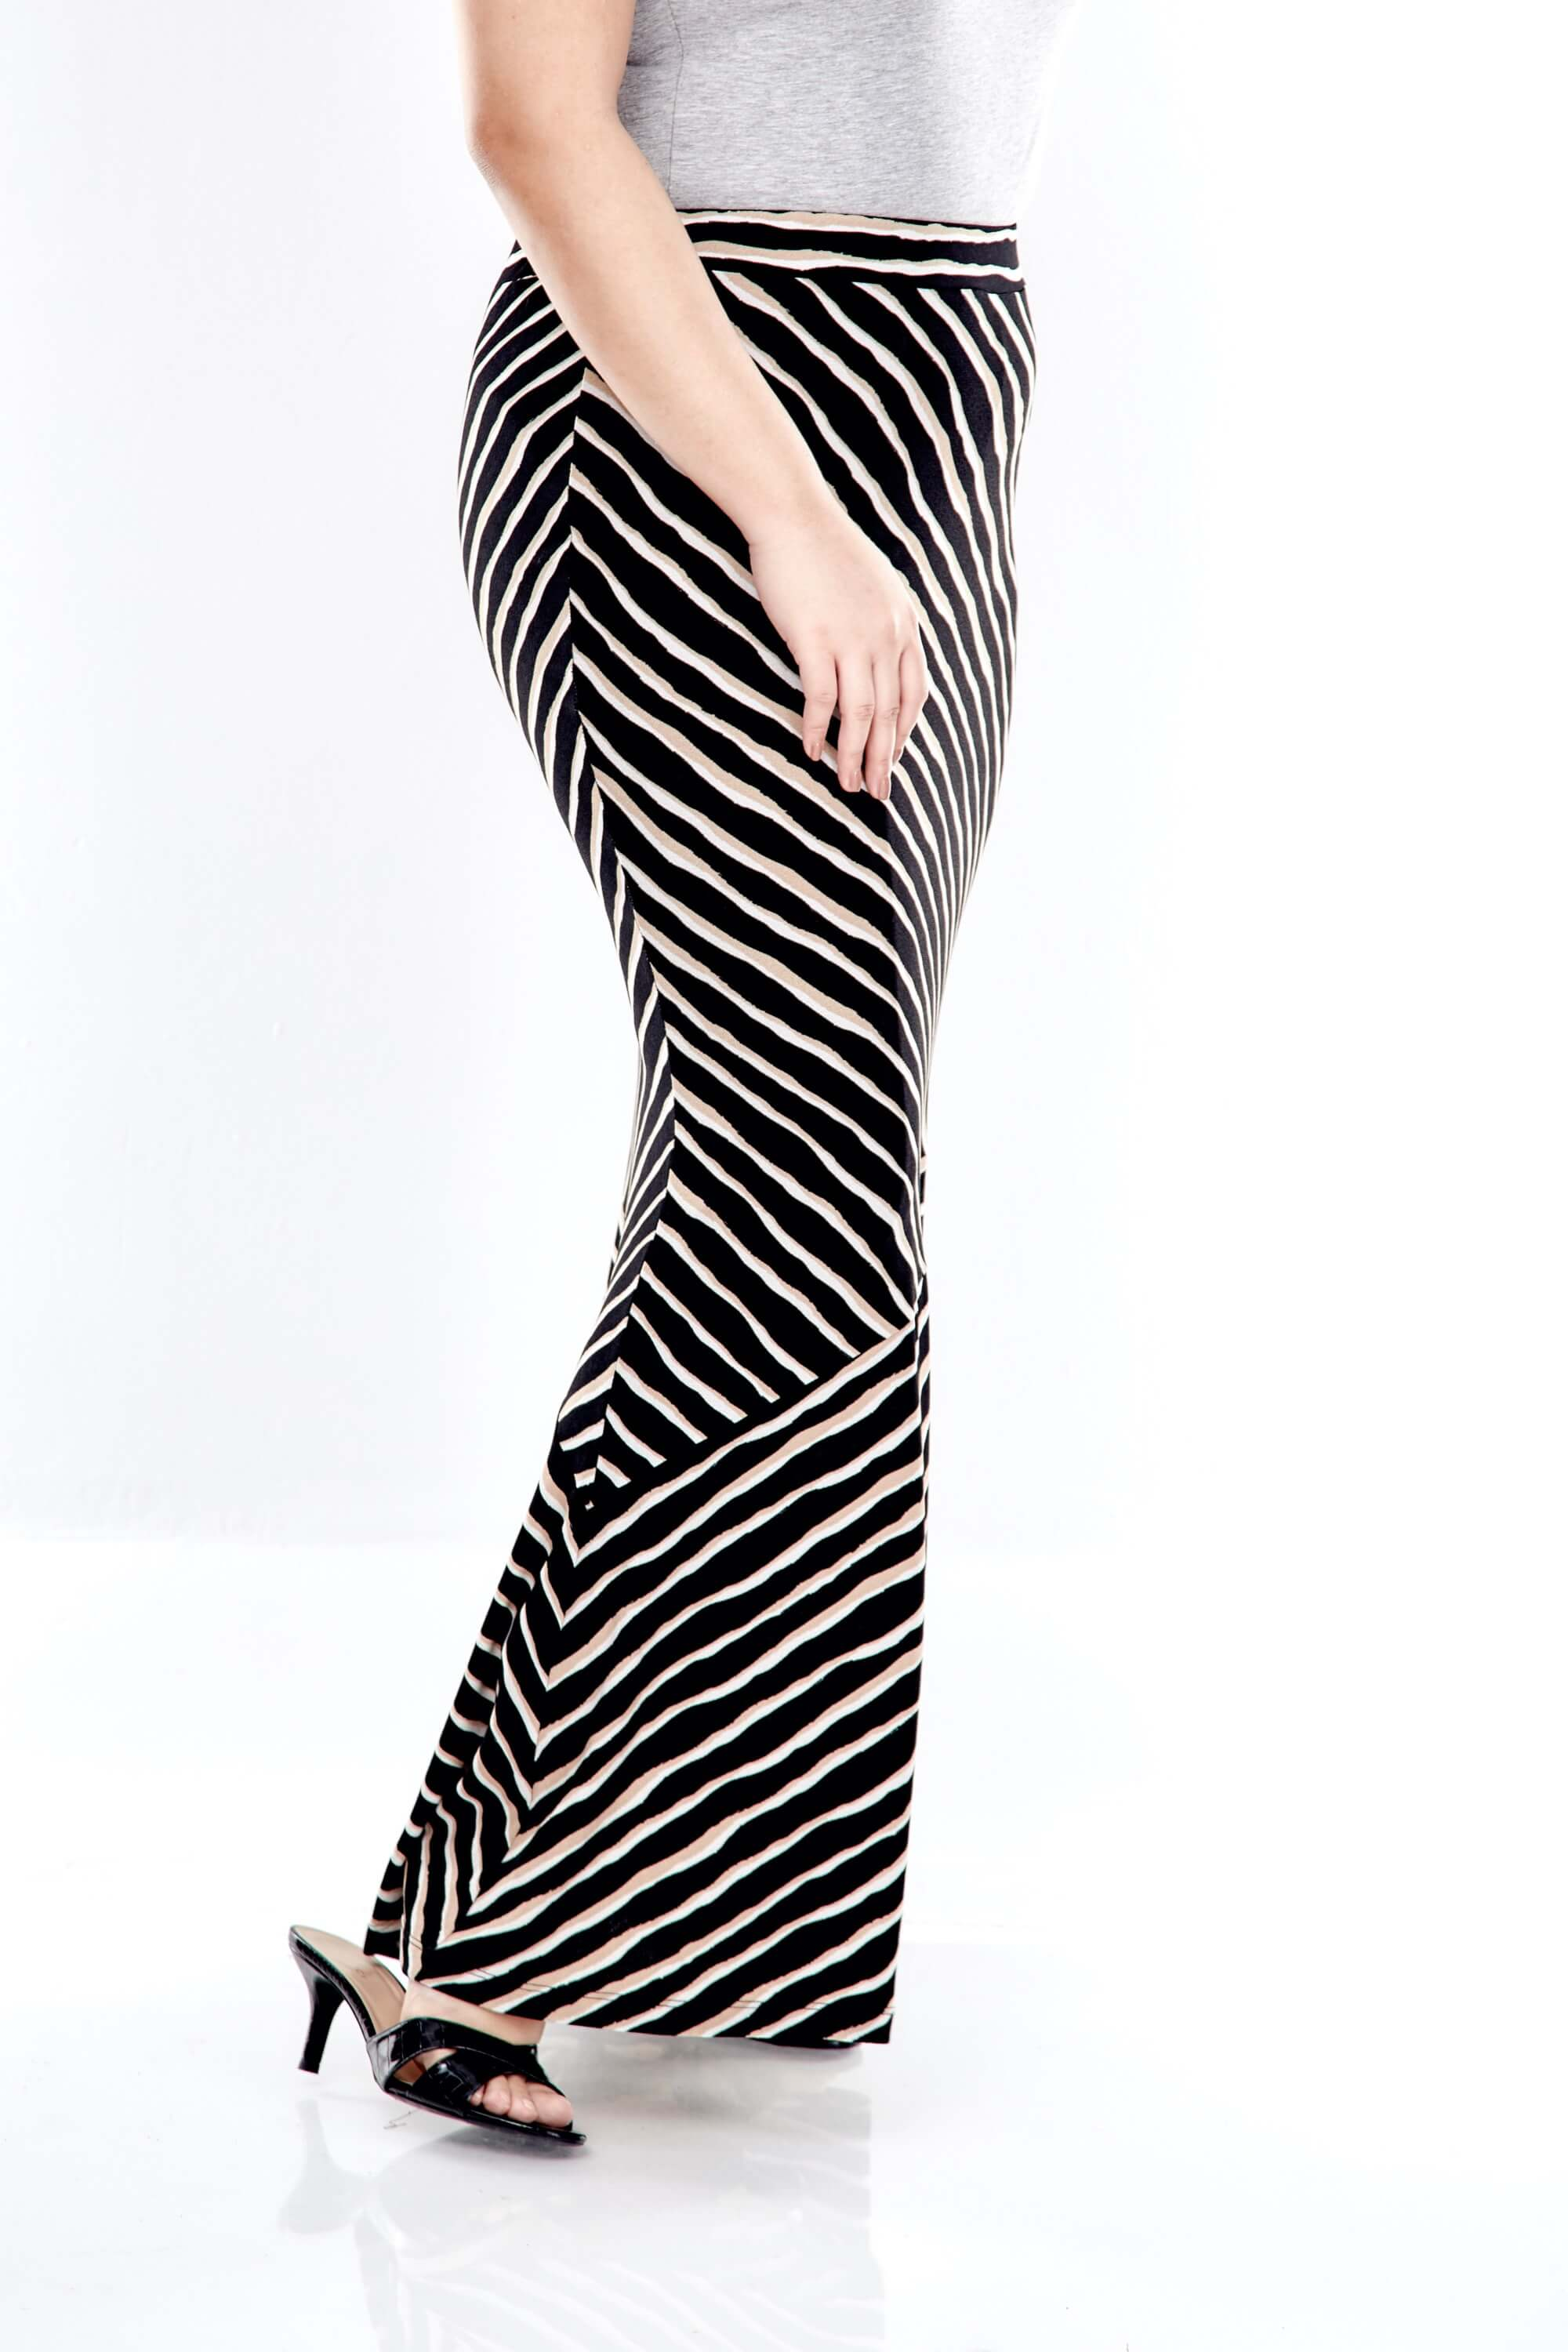 Brown Striped Long Skirt With Cut At Bottom 1